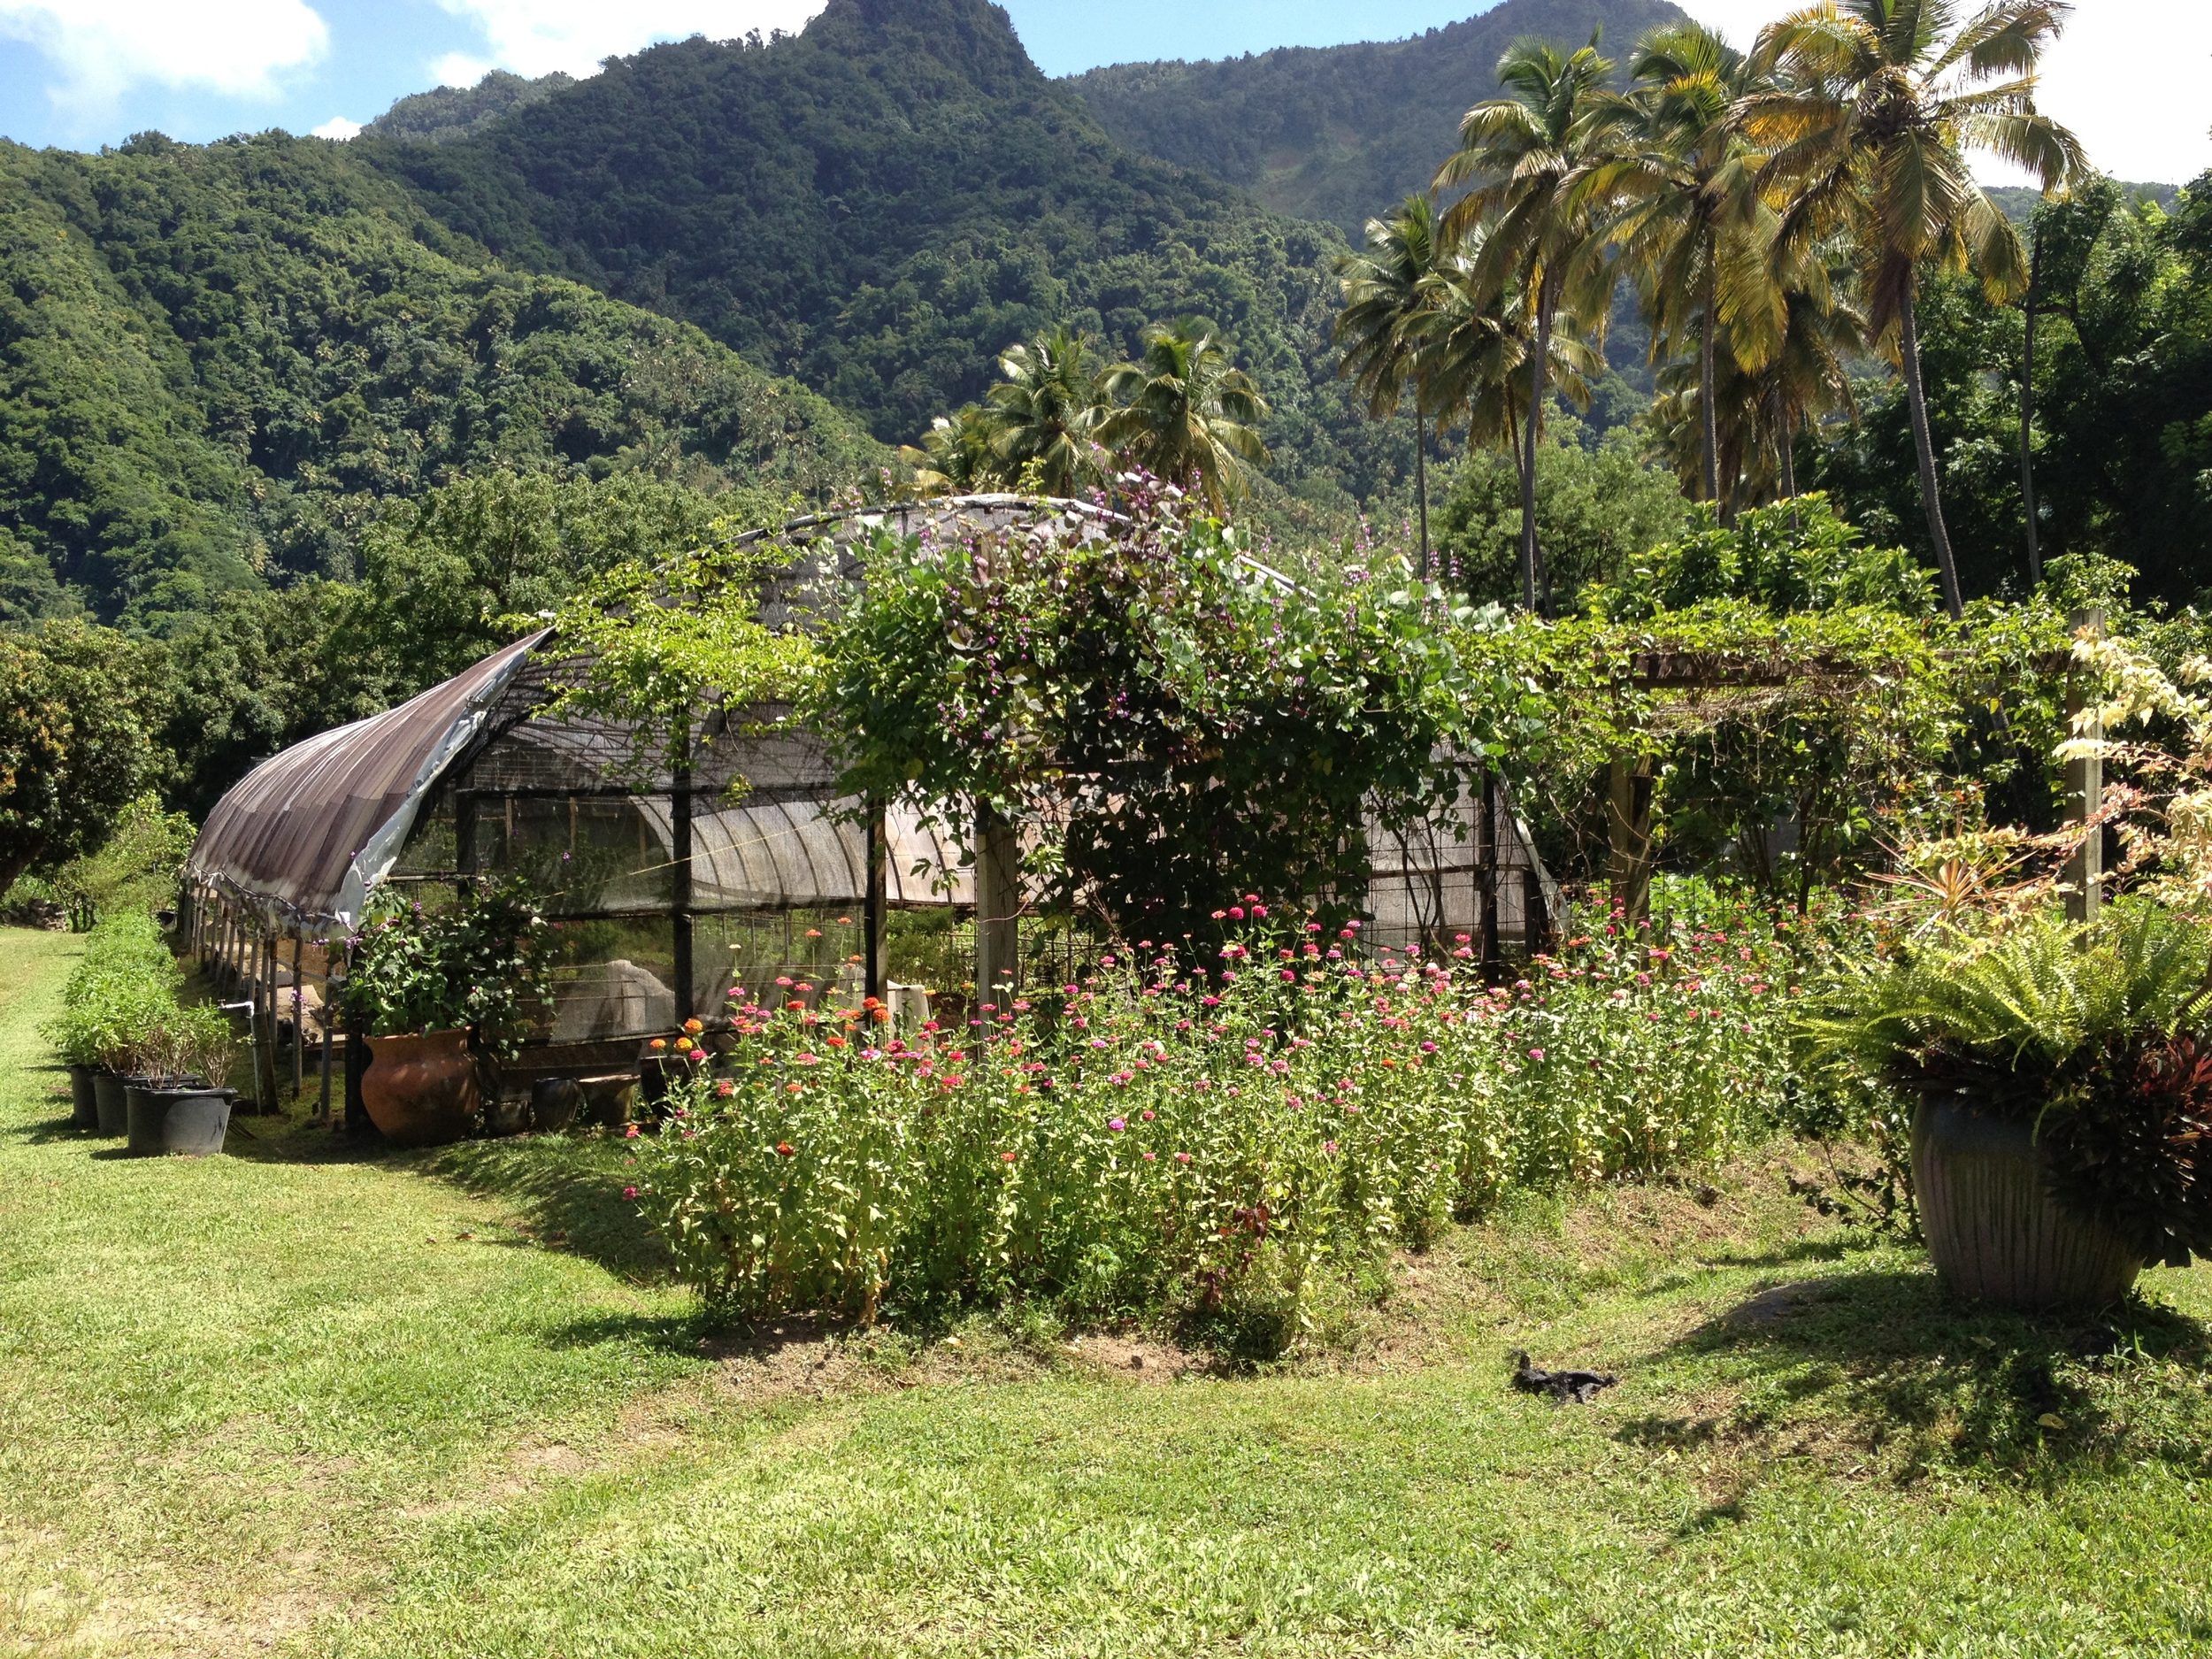 The greenhouses at Emerald Estate Farm at Jade Mountain